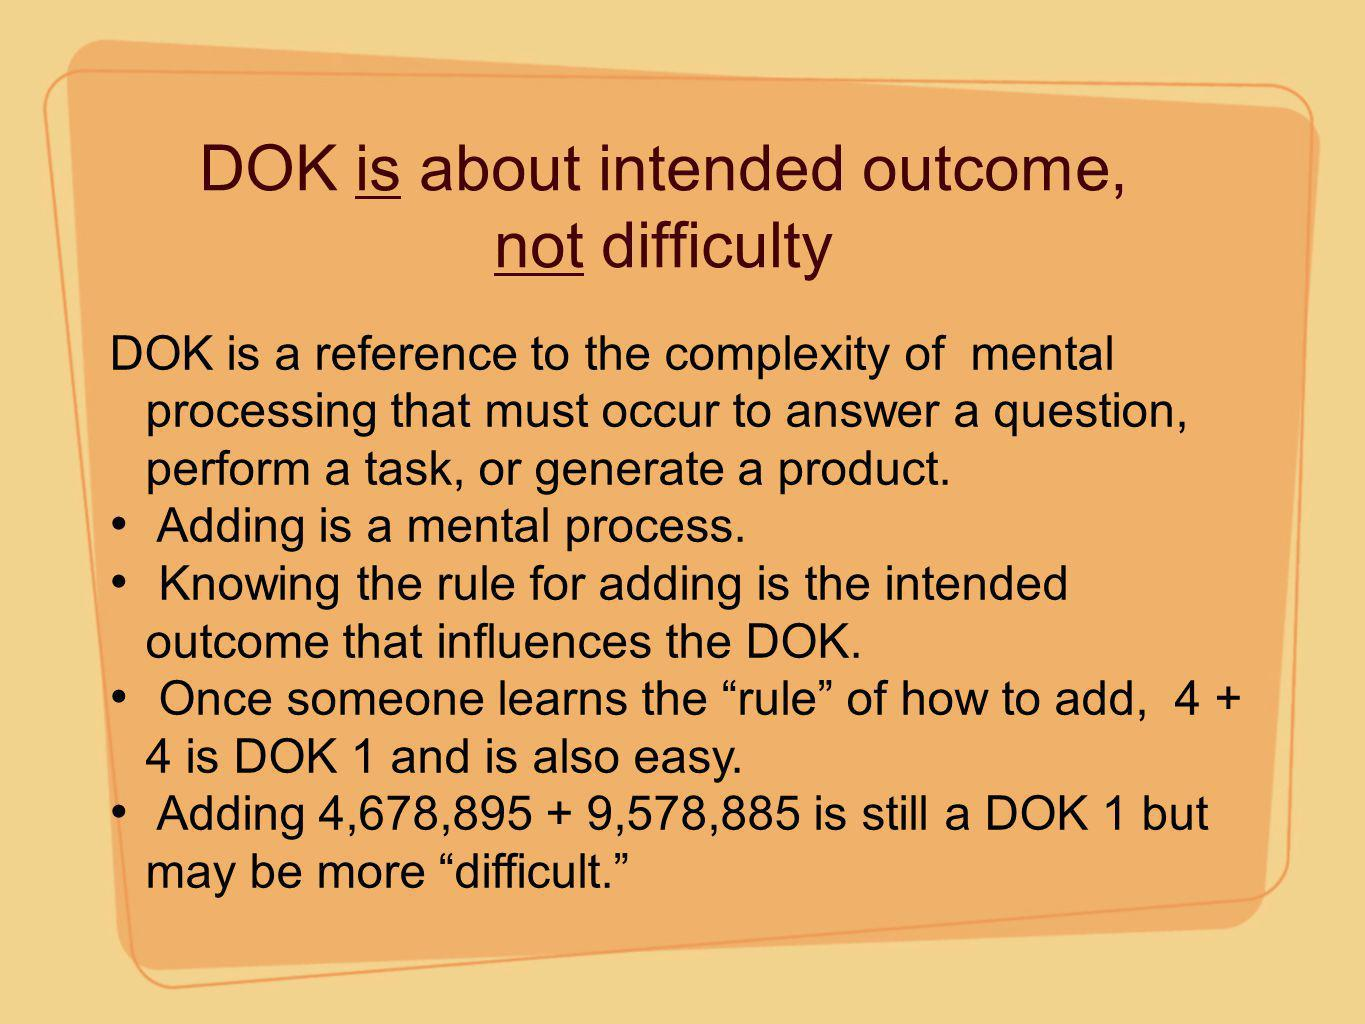 DOK is about intended outcome, not difficulty